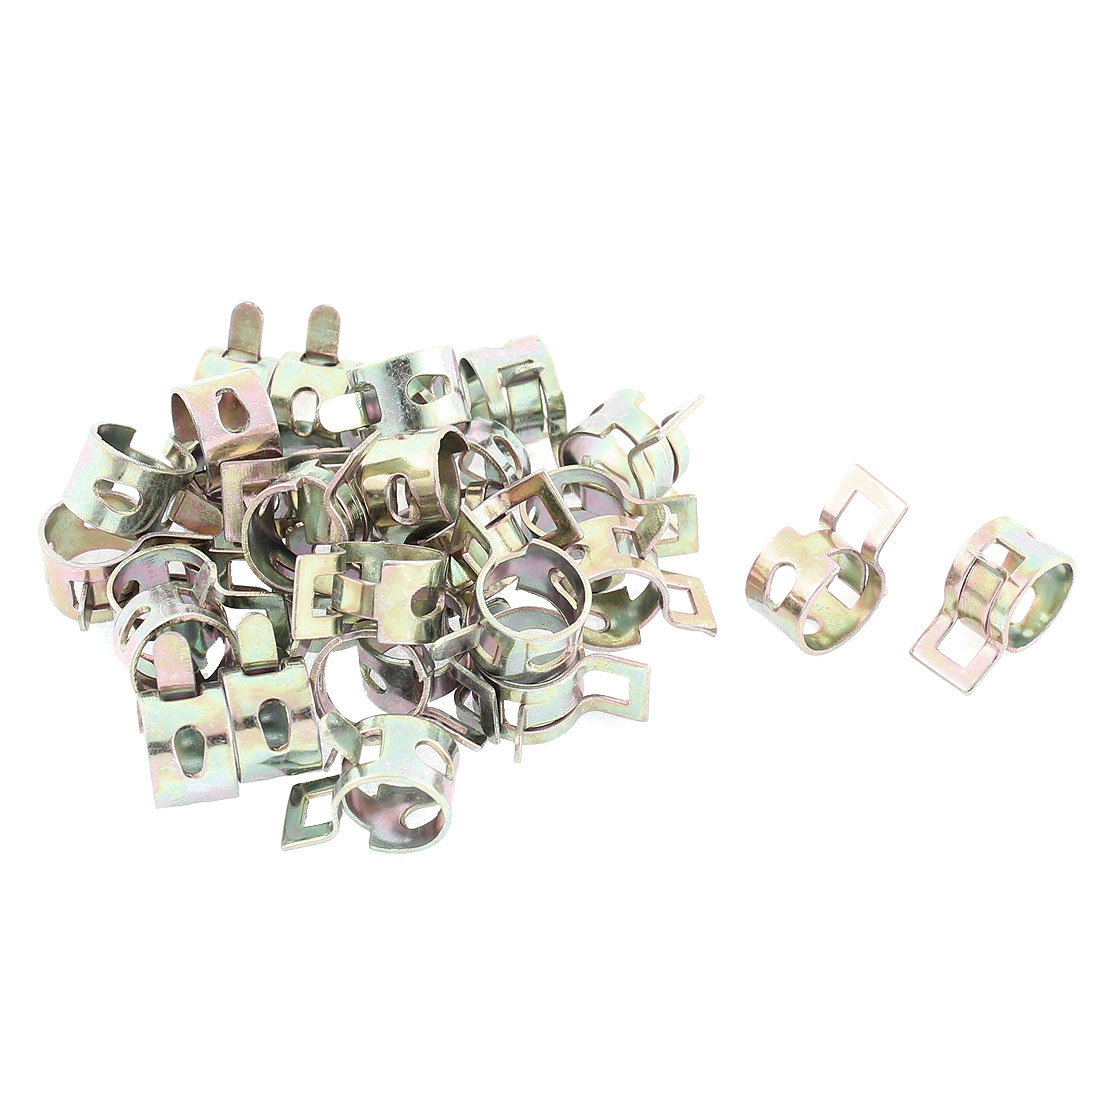 30 Pcs Breather Overflow Pipe Vacuum Hose Spring Clip Clamps